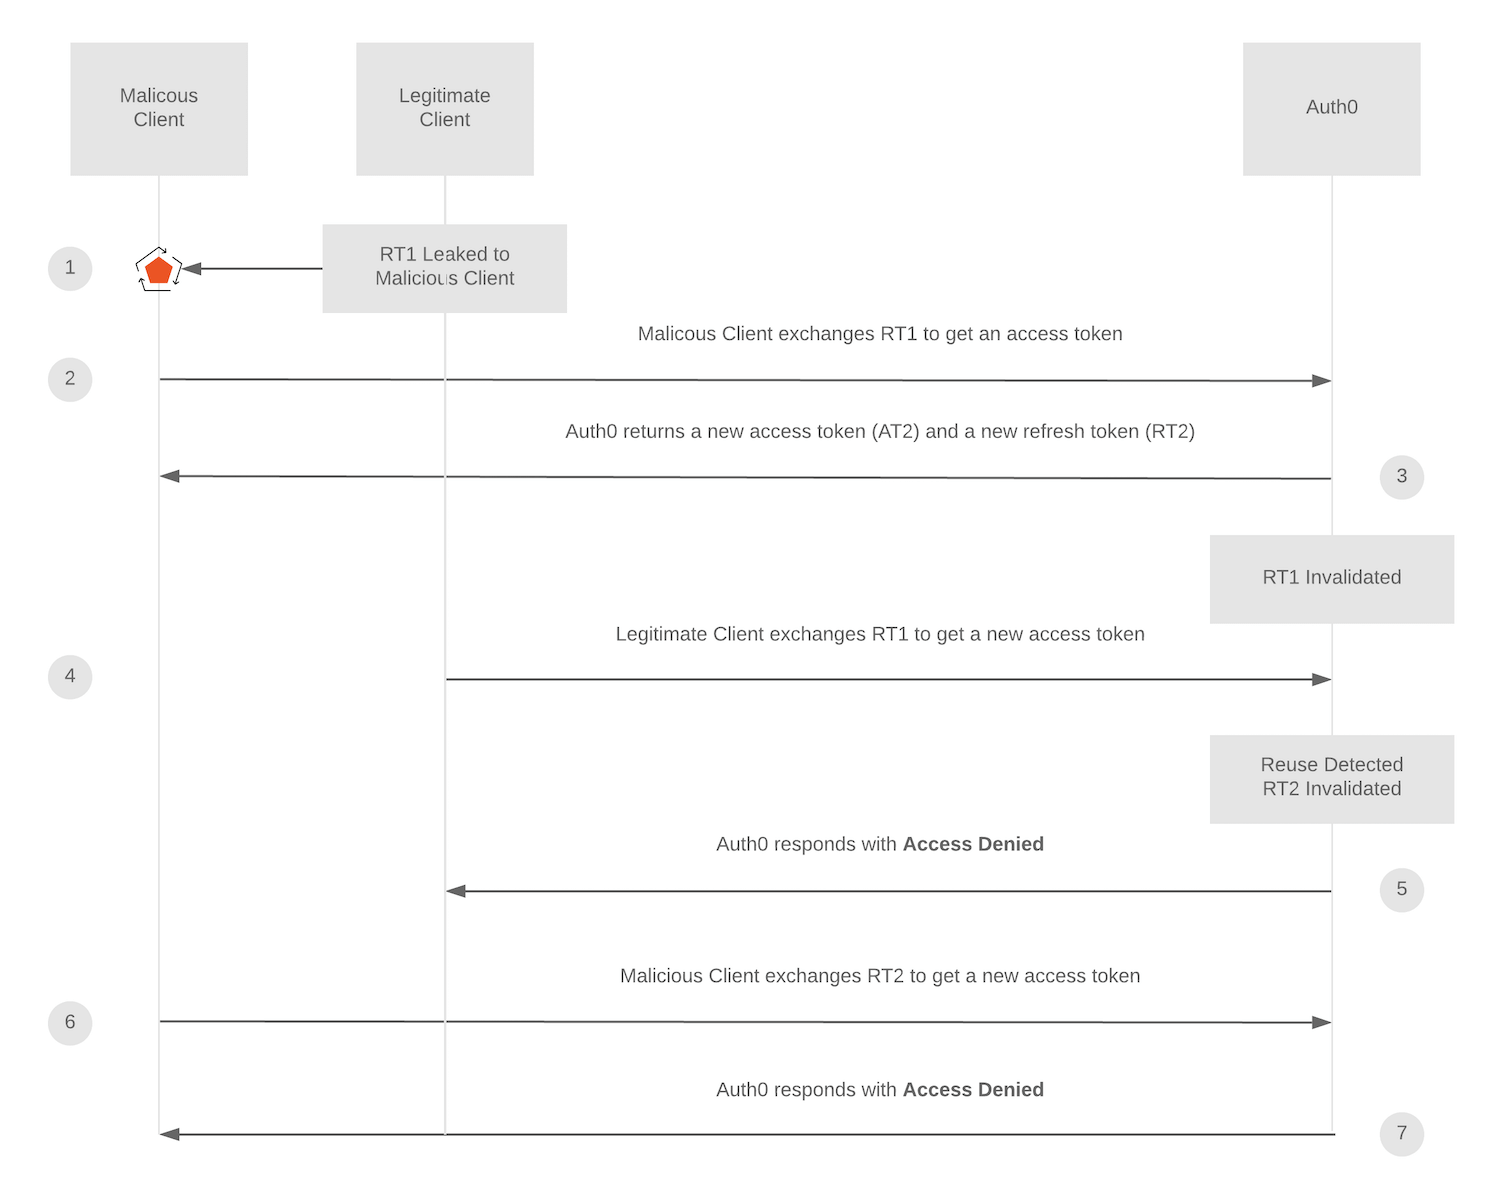 Refresh Token Rotation Reuse Detection State diagram